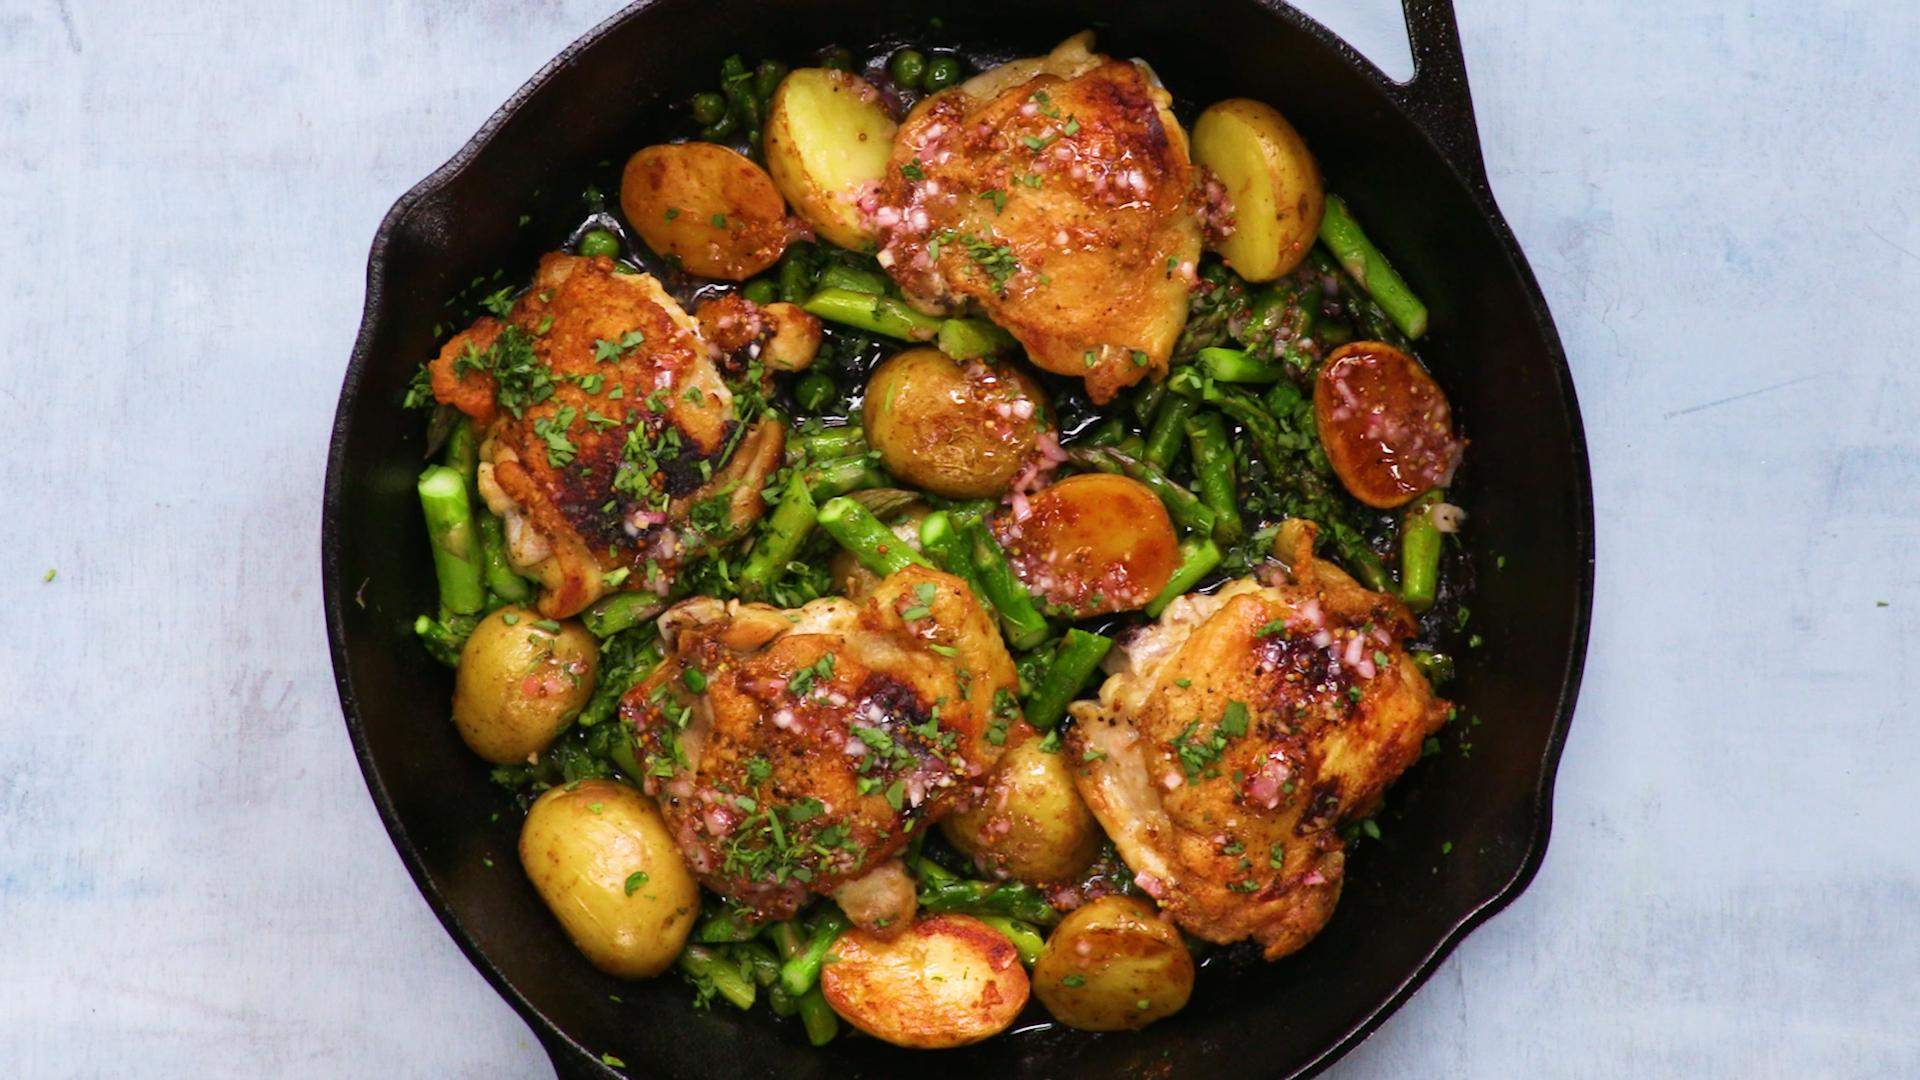 Skillet Chicken Thighs with Spring Vegetables and Shallot Vinaigrette